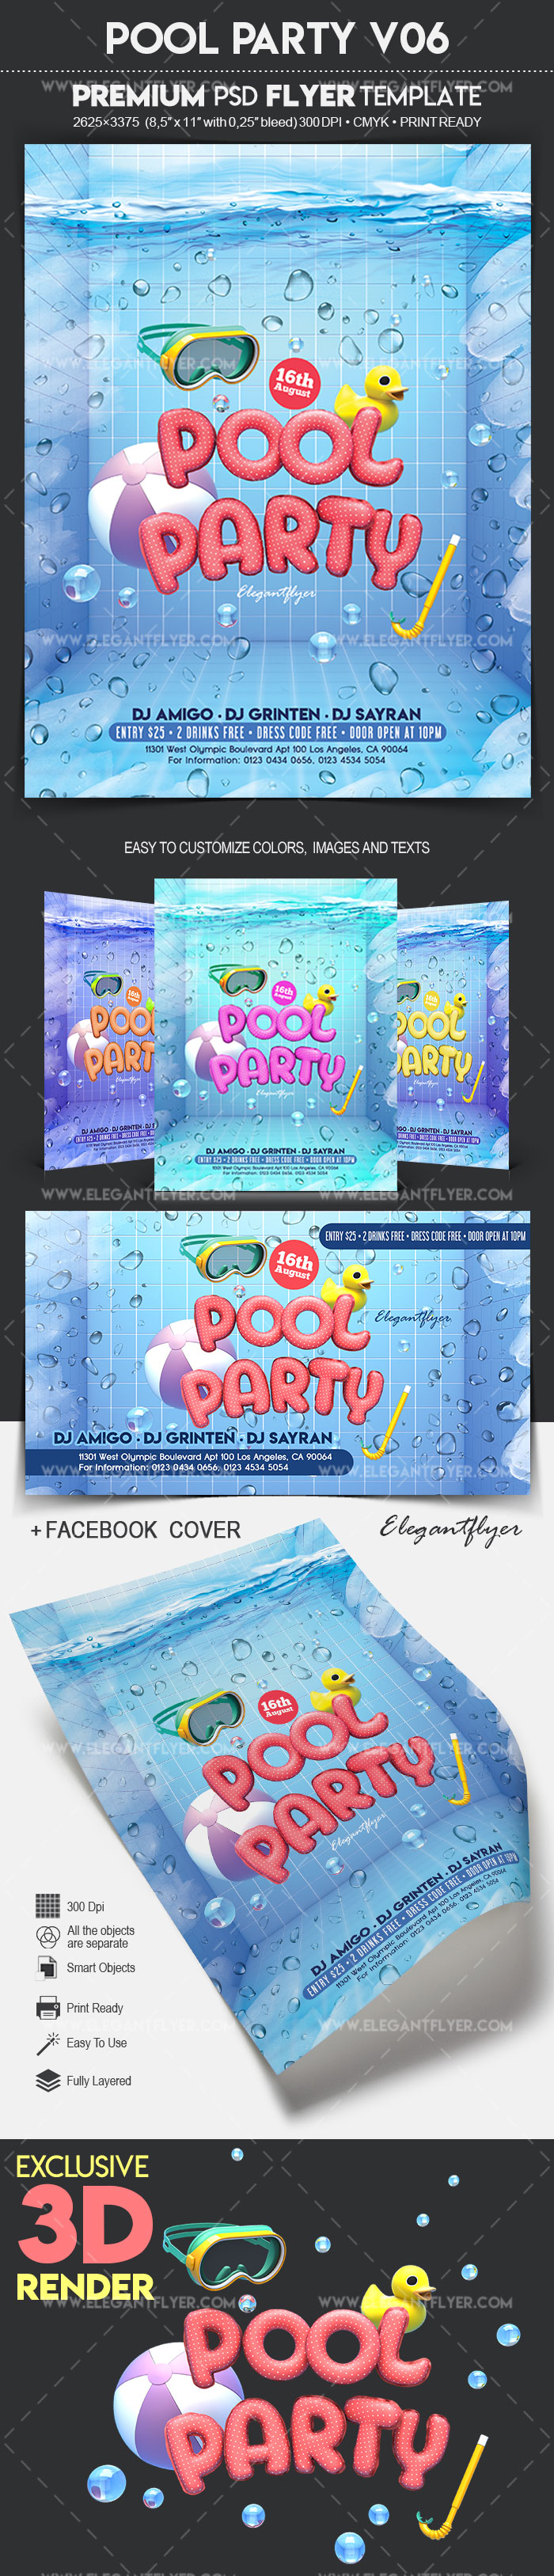 Pool Party V06 – Flyer PSD Template